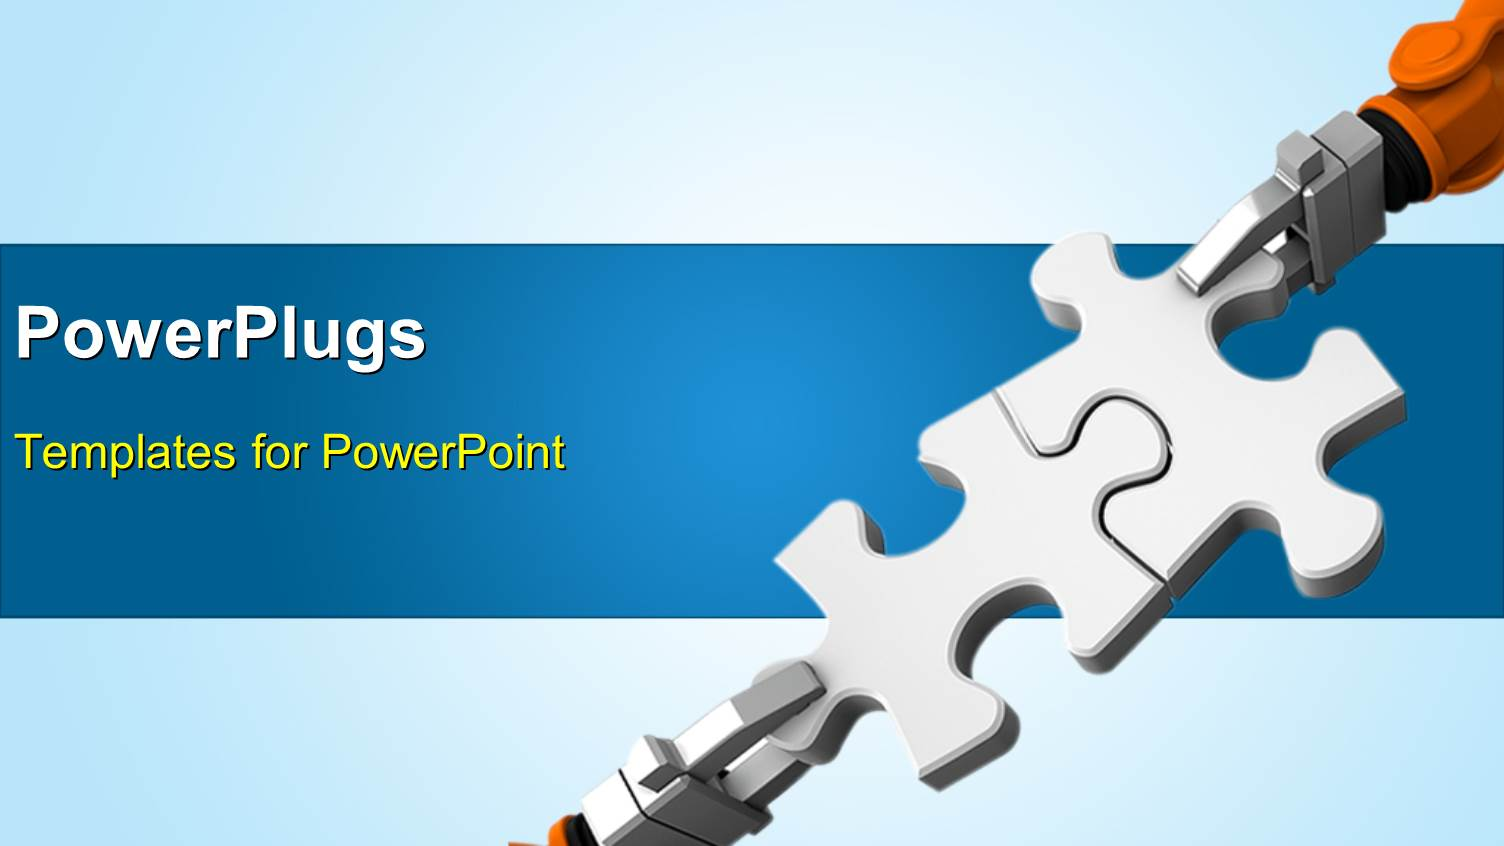 5000 automation powerpoint templates w automation themed backgrounds amazing ppt theme consisting of robot holding jigsaw puzzle piece on a blue background template size toneelgroepblik Choice Image